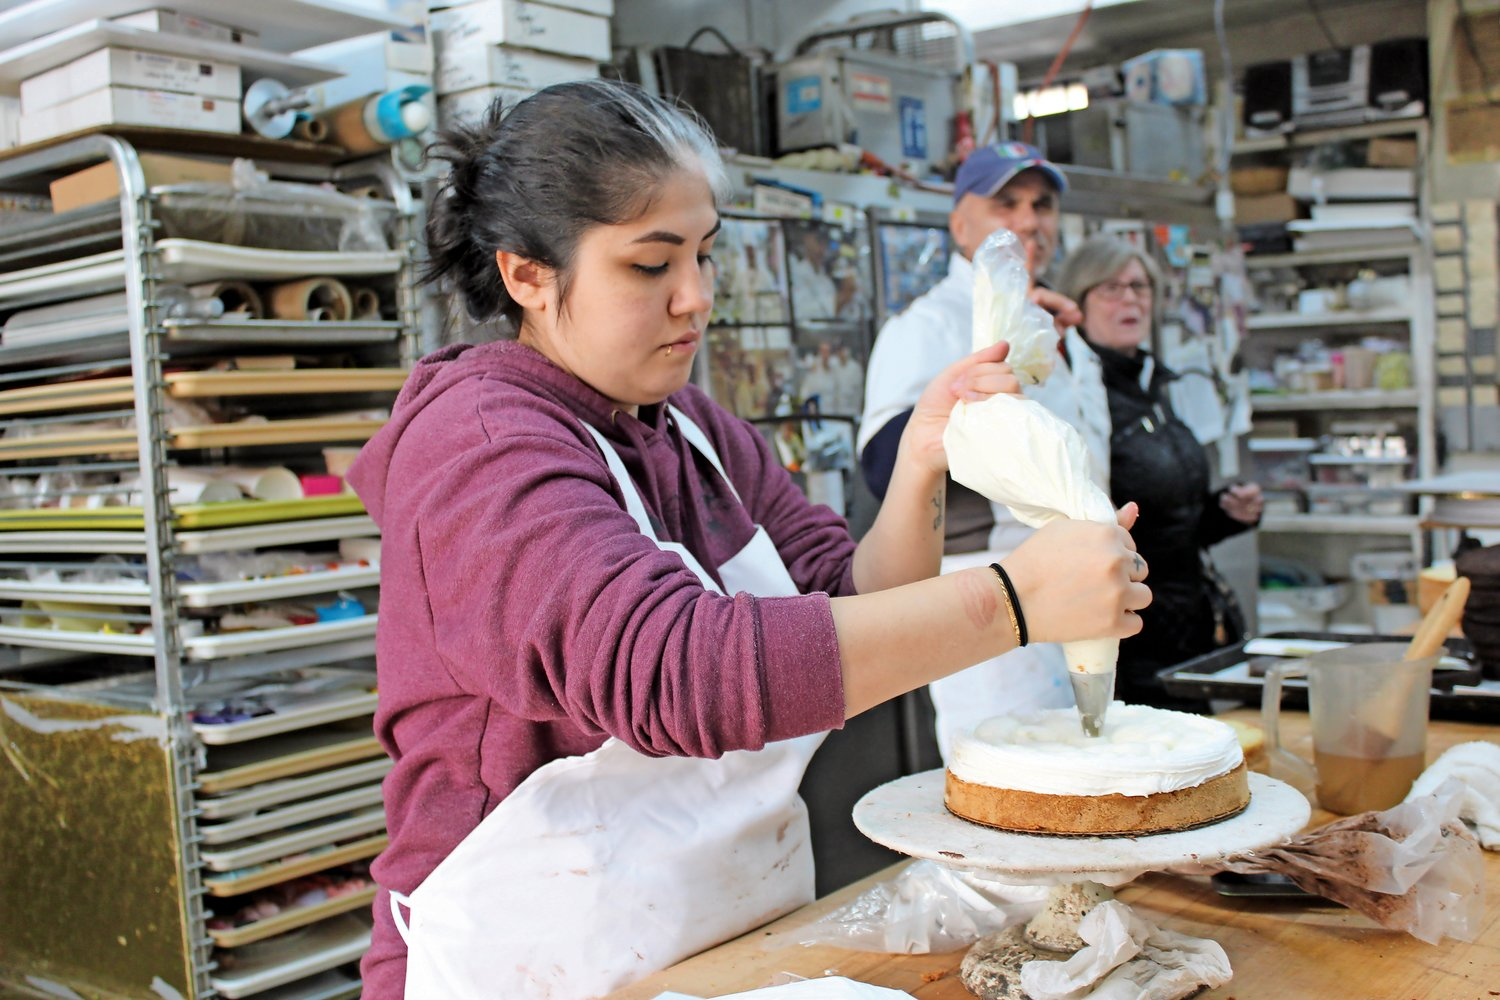 Kathryn McCusker iced a cake at the Sapienza Bake Shop on Nov. 29.